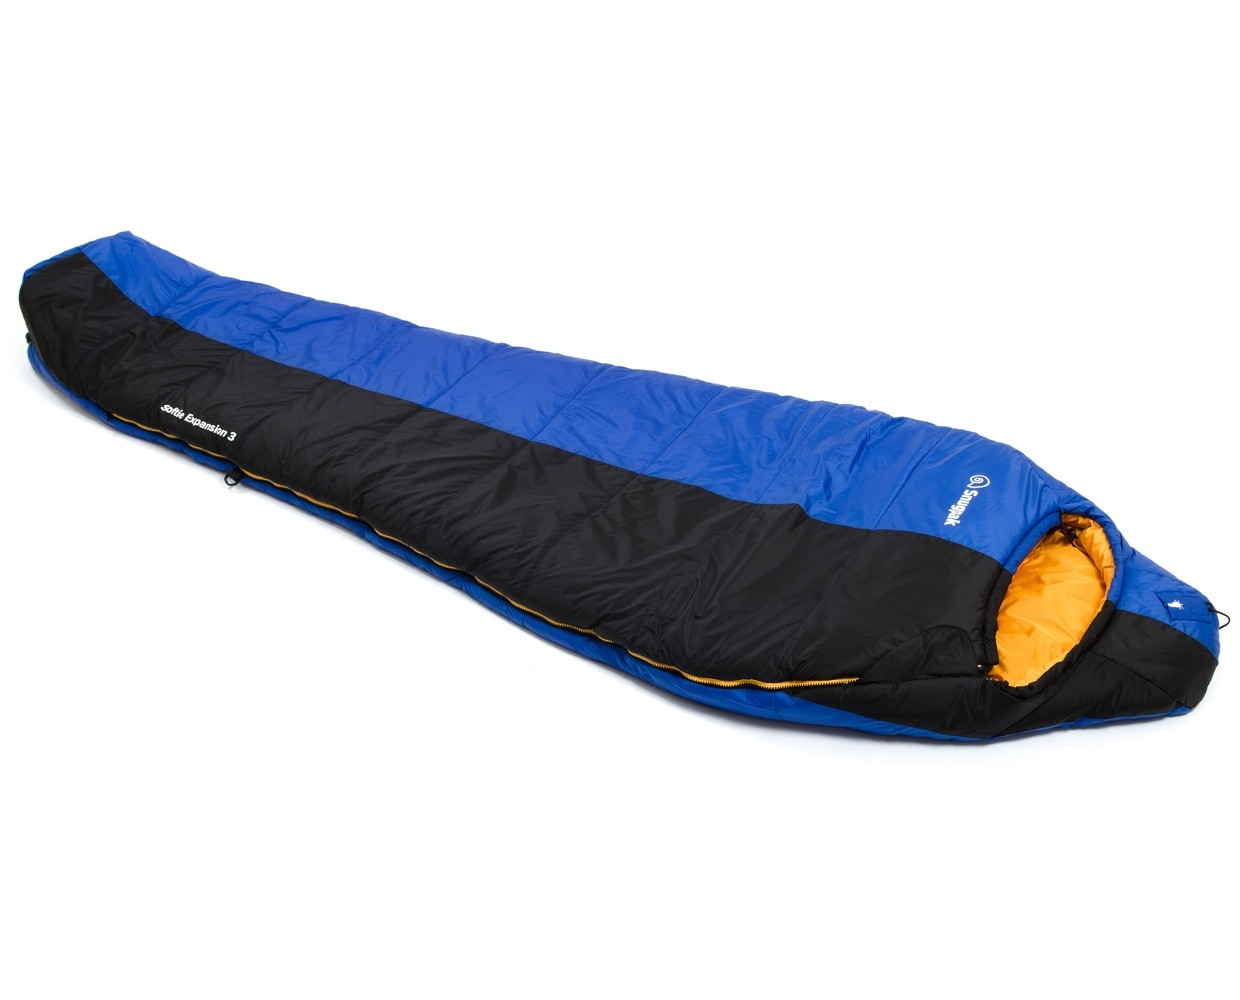 Snugpak Softie Expansion 3 Azure/Black